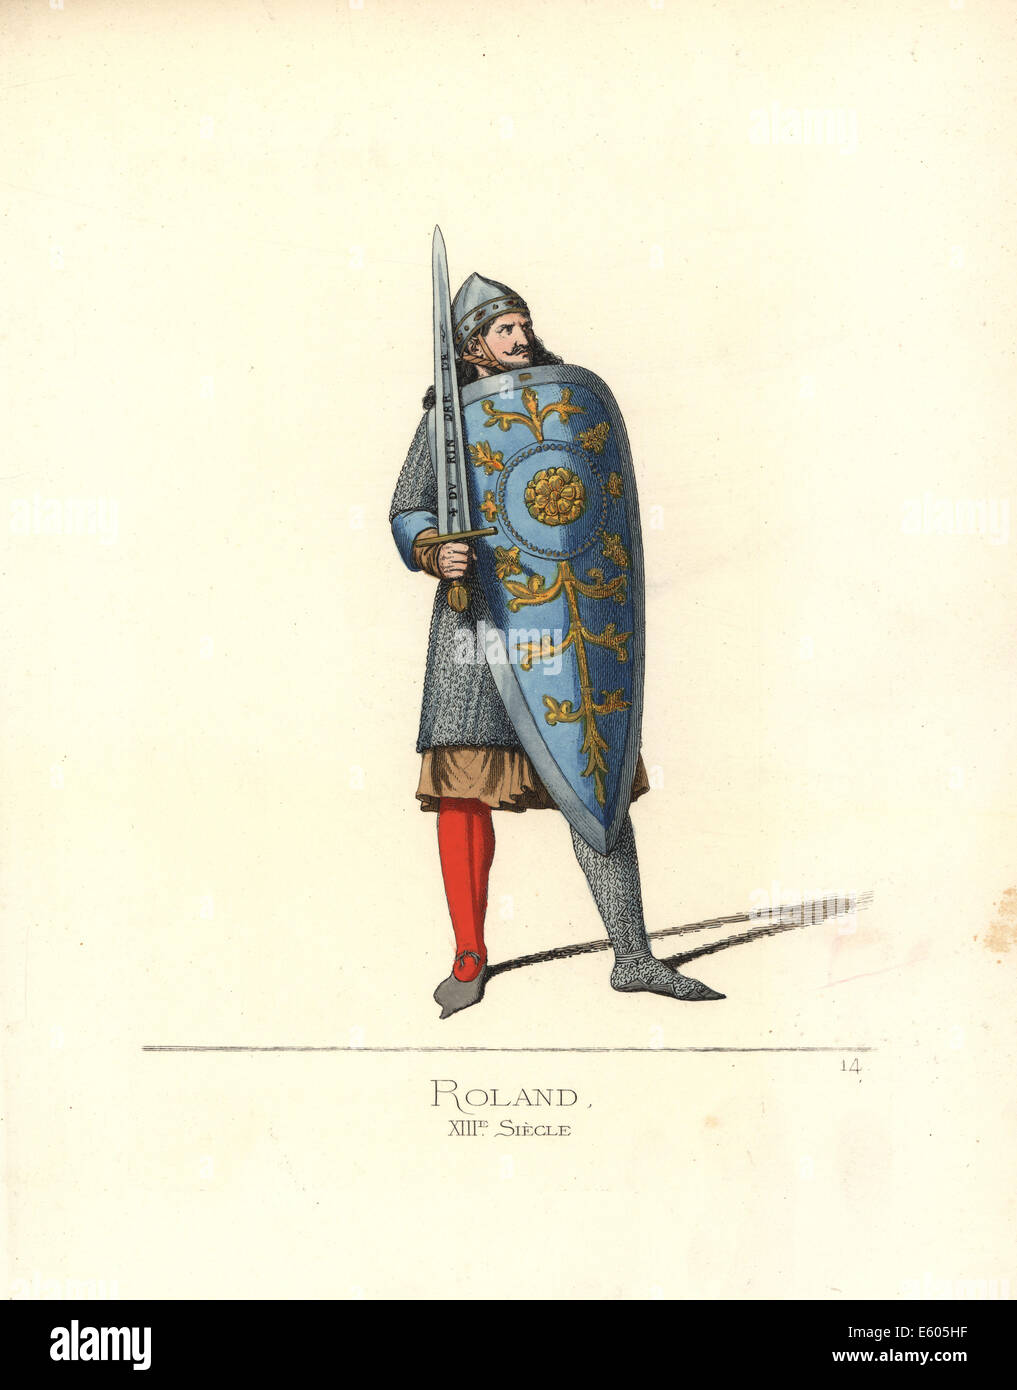 The paladin Roland, from the Song of Roland, 13th century. - Stock Image